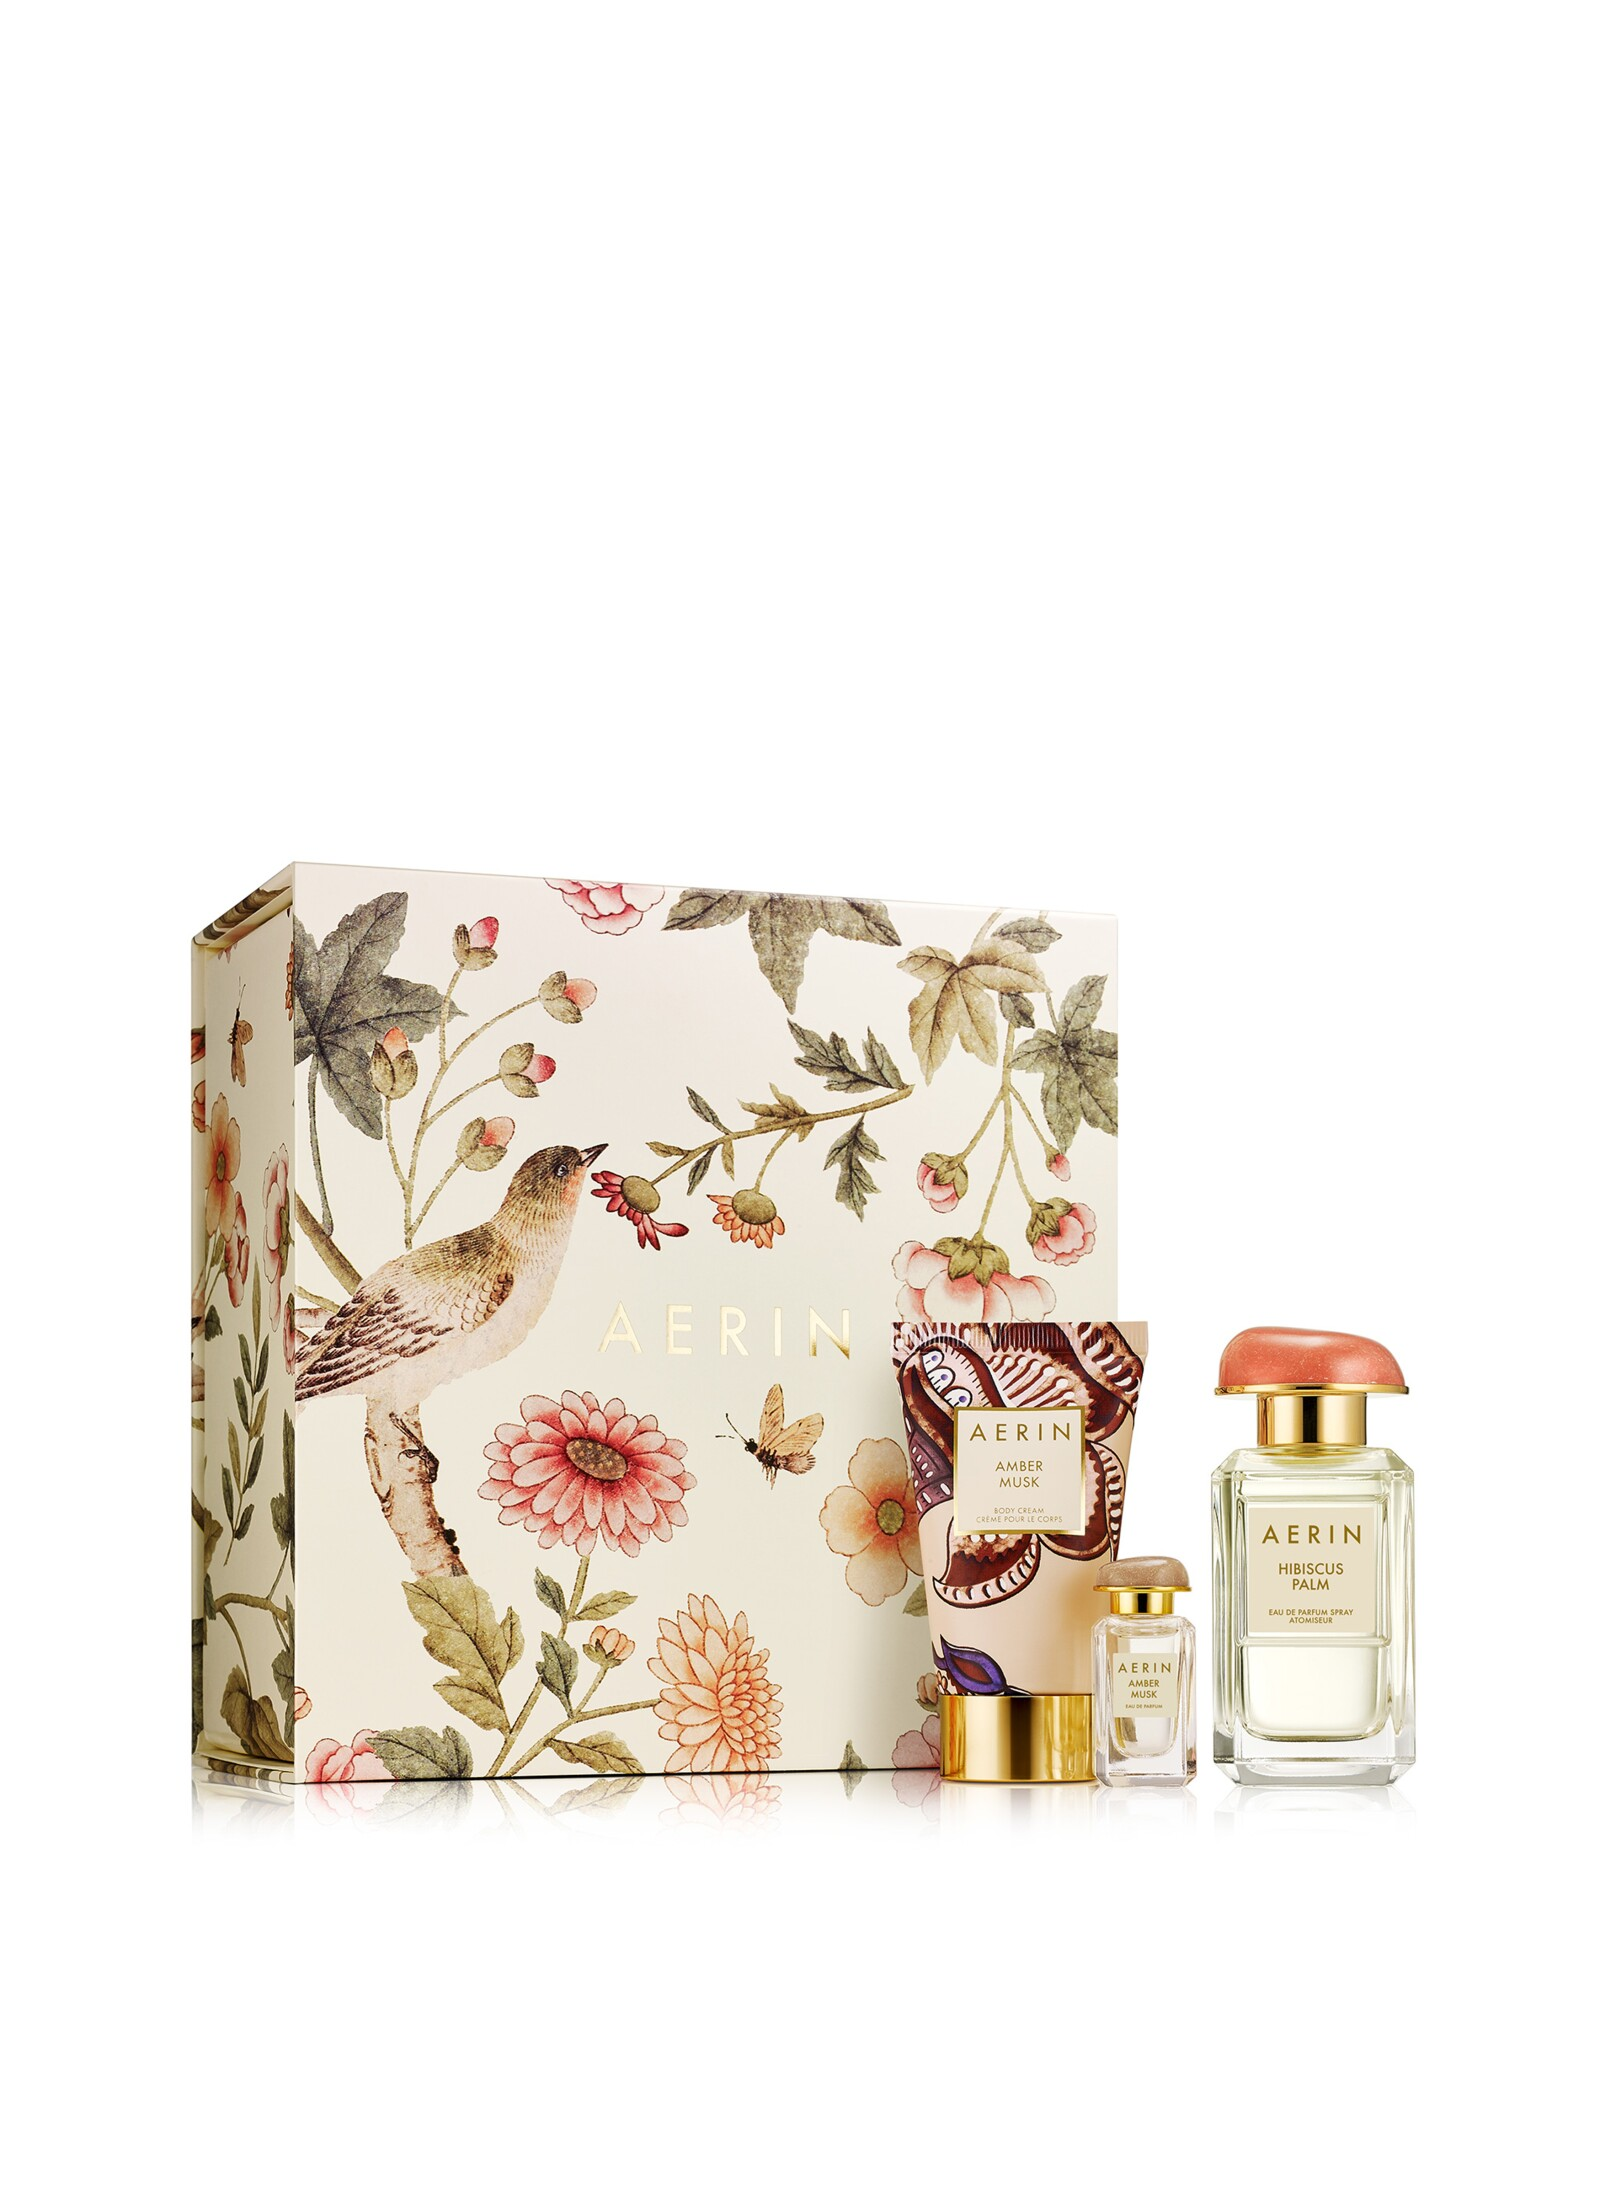 AERIN Holiday 2018_Product on White_Amber Musk + Hibiscus Palm Set_ONLINE RIGHTS ONLY_No Expiry.jpg